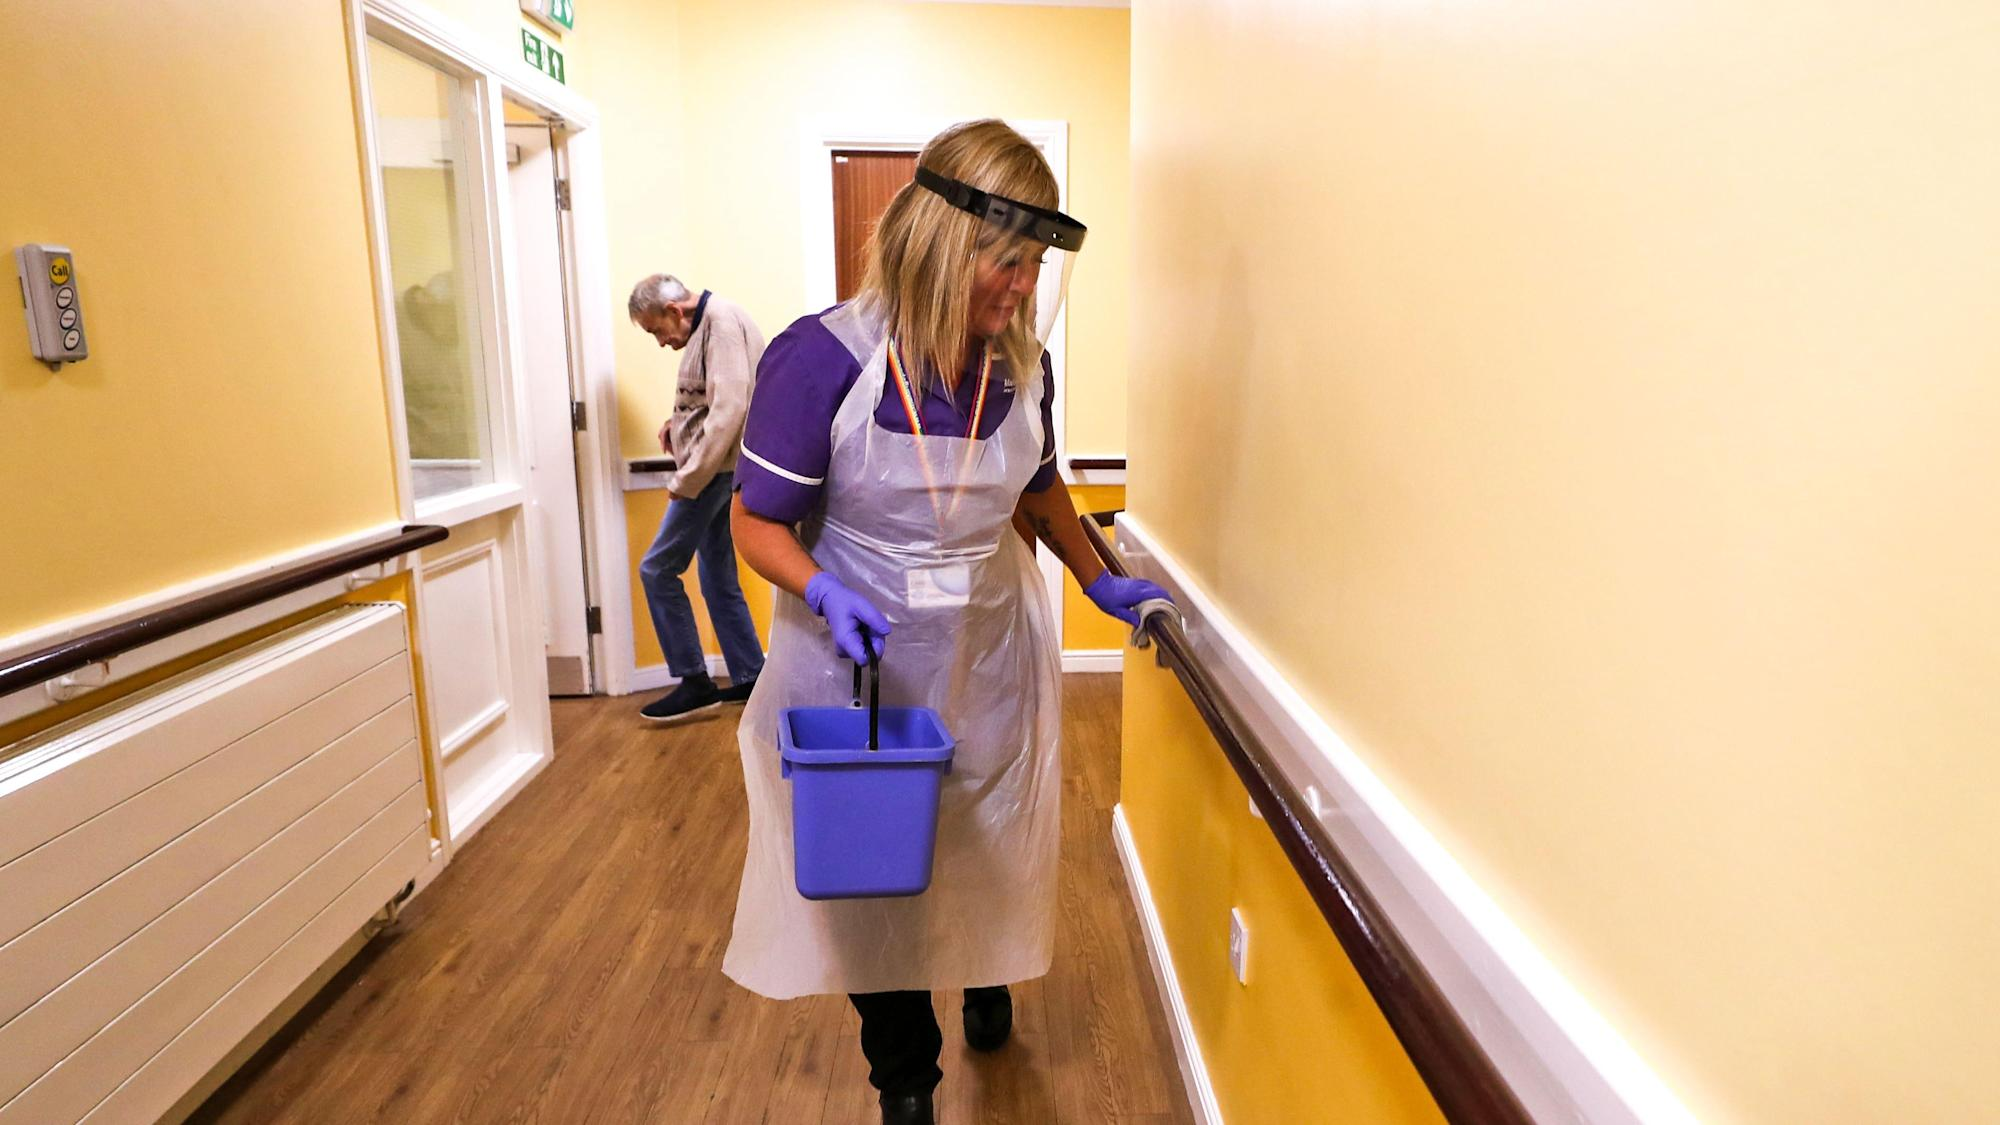 Social care workers underpaid by thousands of pounds a year – charity